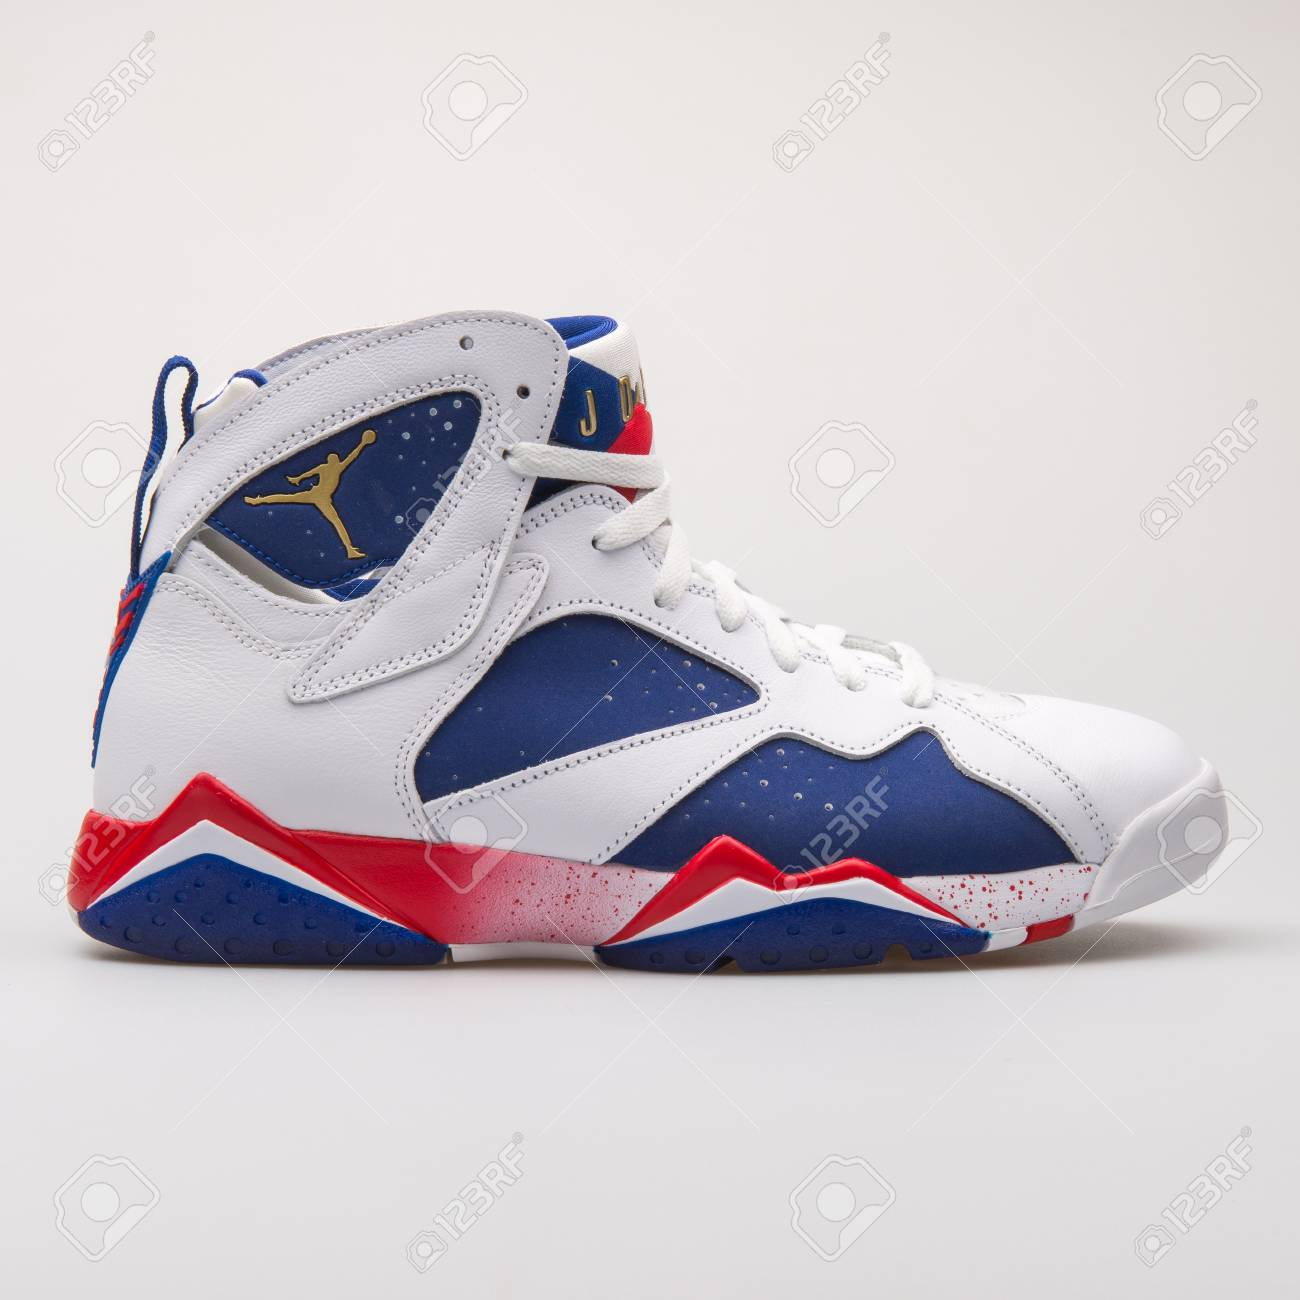 buy popular 602f5 1b861 Stock Photo - VIENNA, AUSTRIA - JUNE 14, 2017  Nike Air Jordan 7 Retro  white, blue and red sneaker isolated on grey background